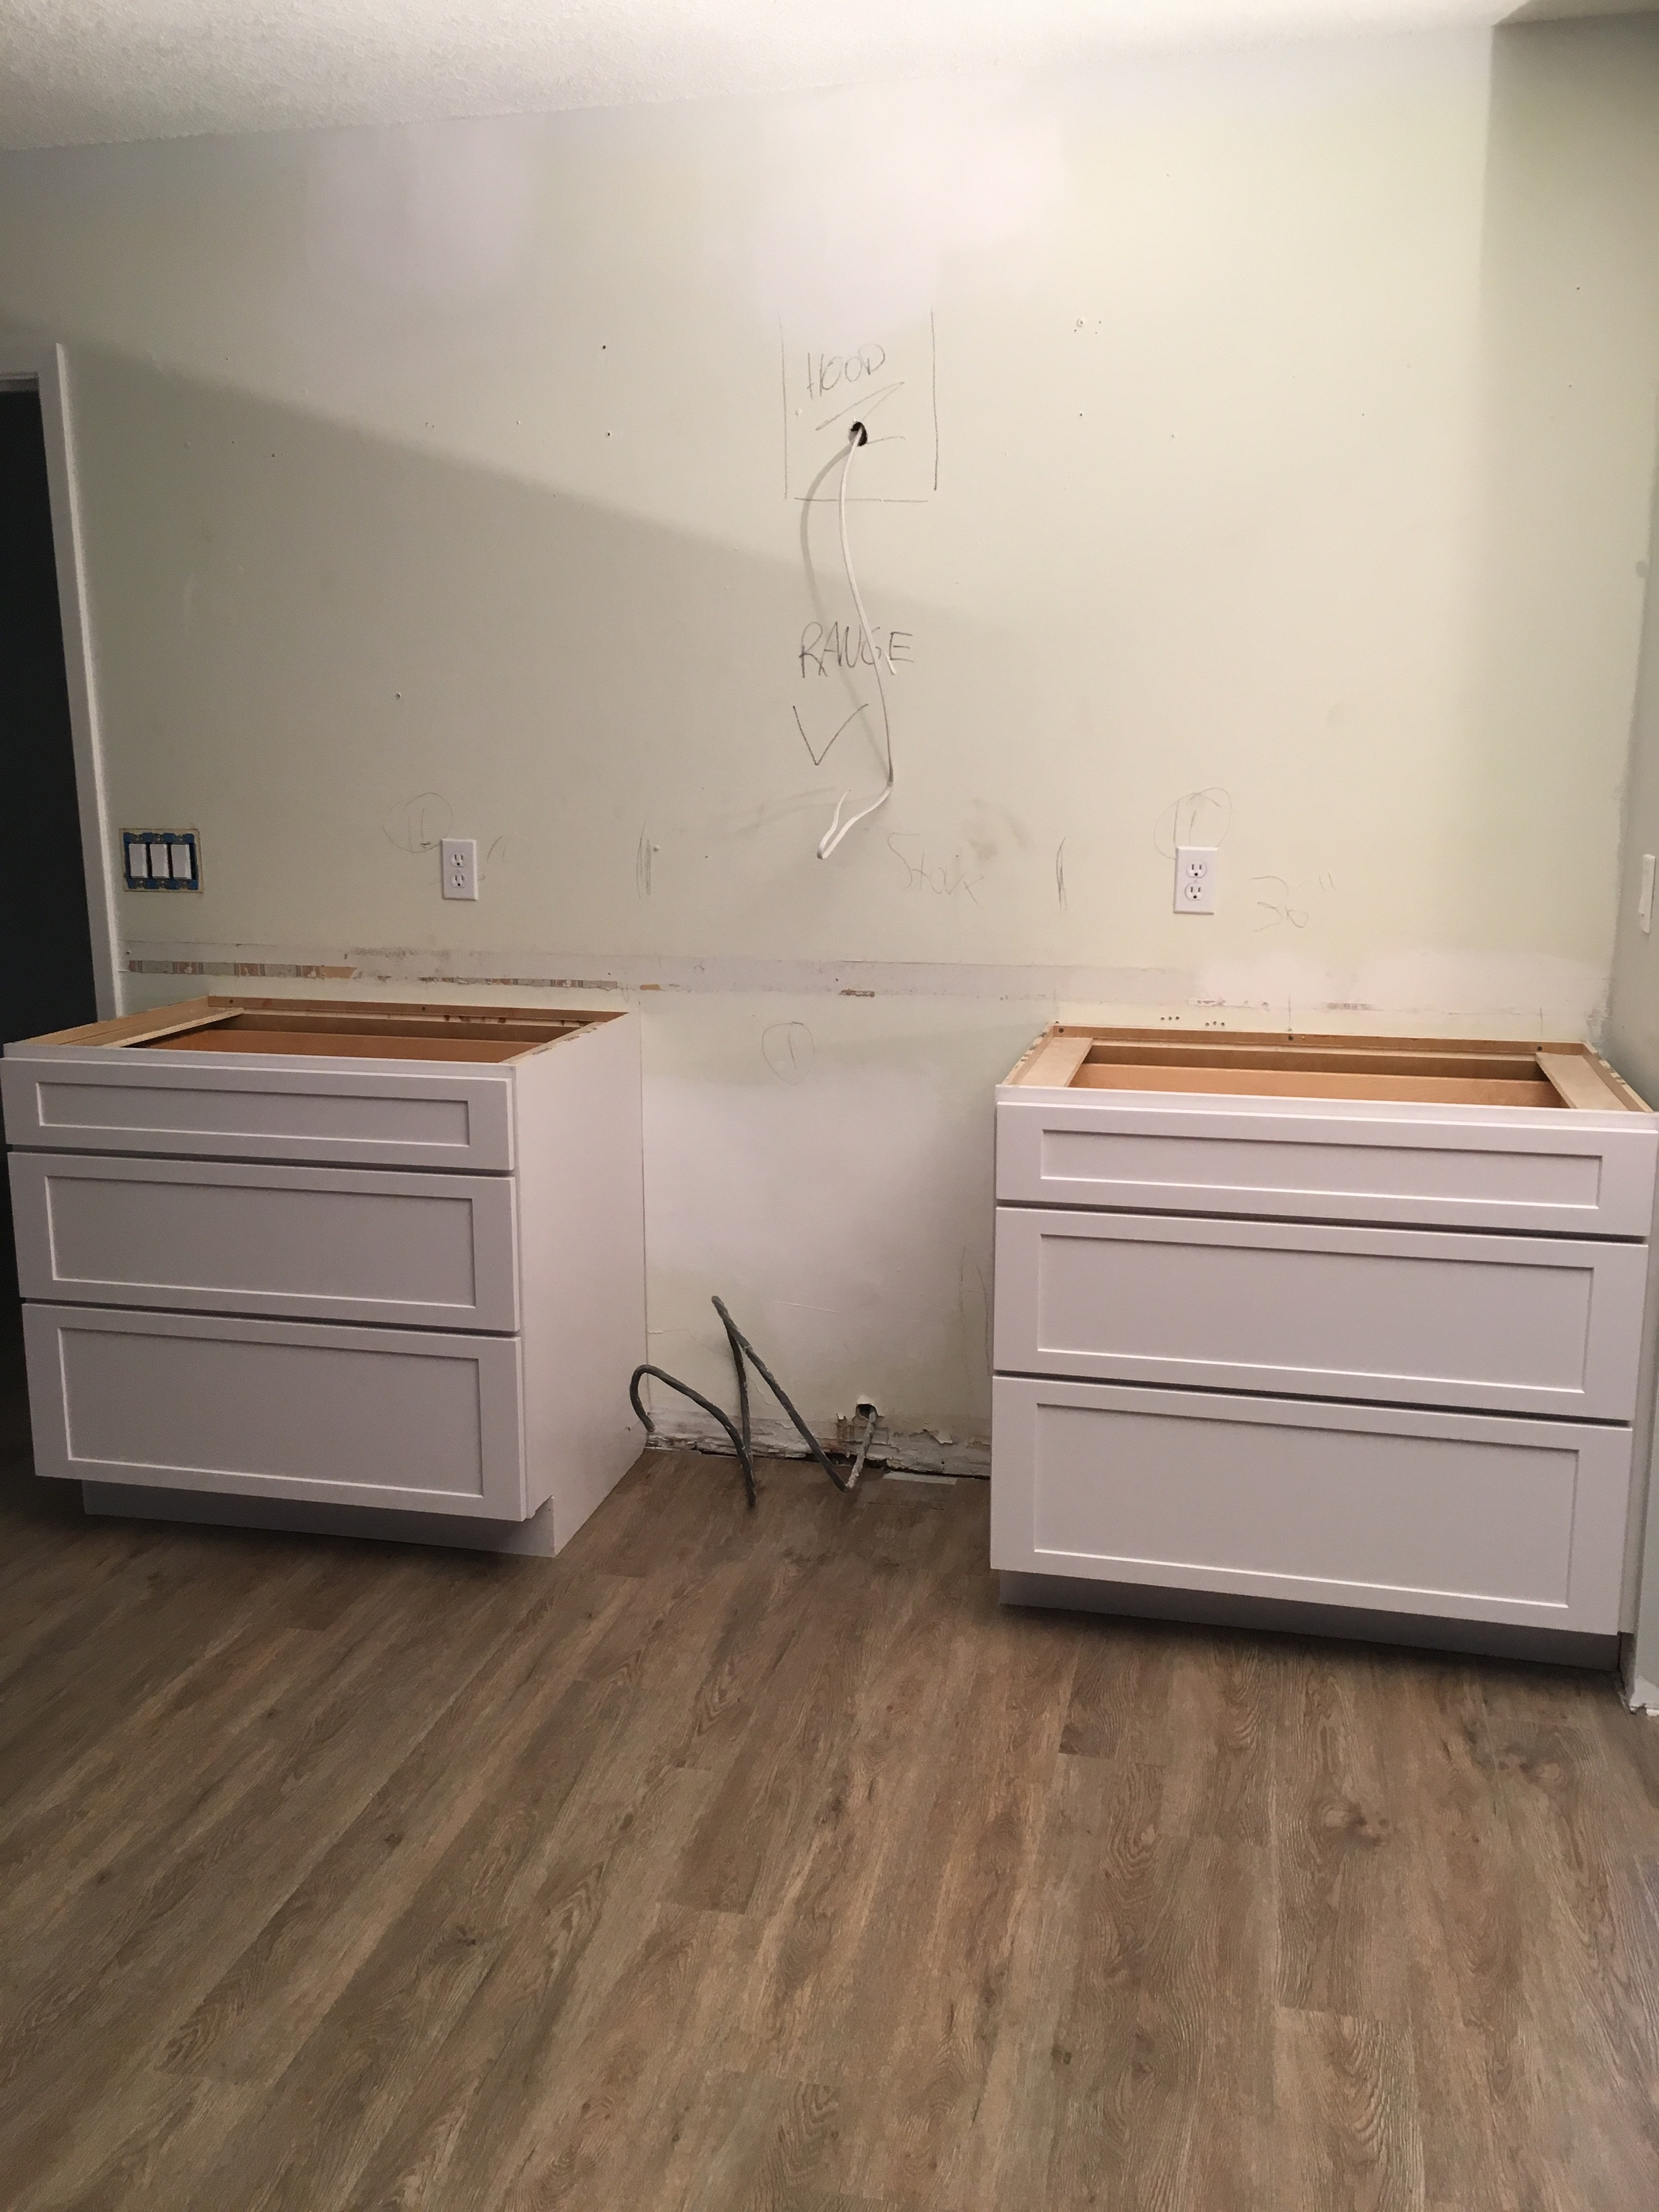 White Shaker Cabinets and Farm Sink